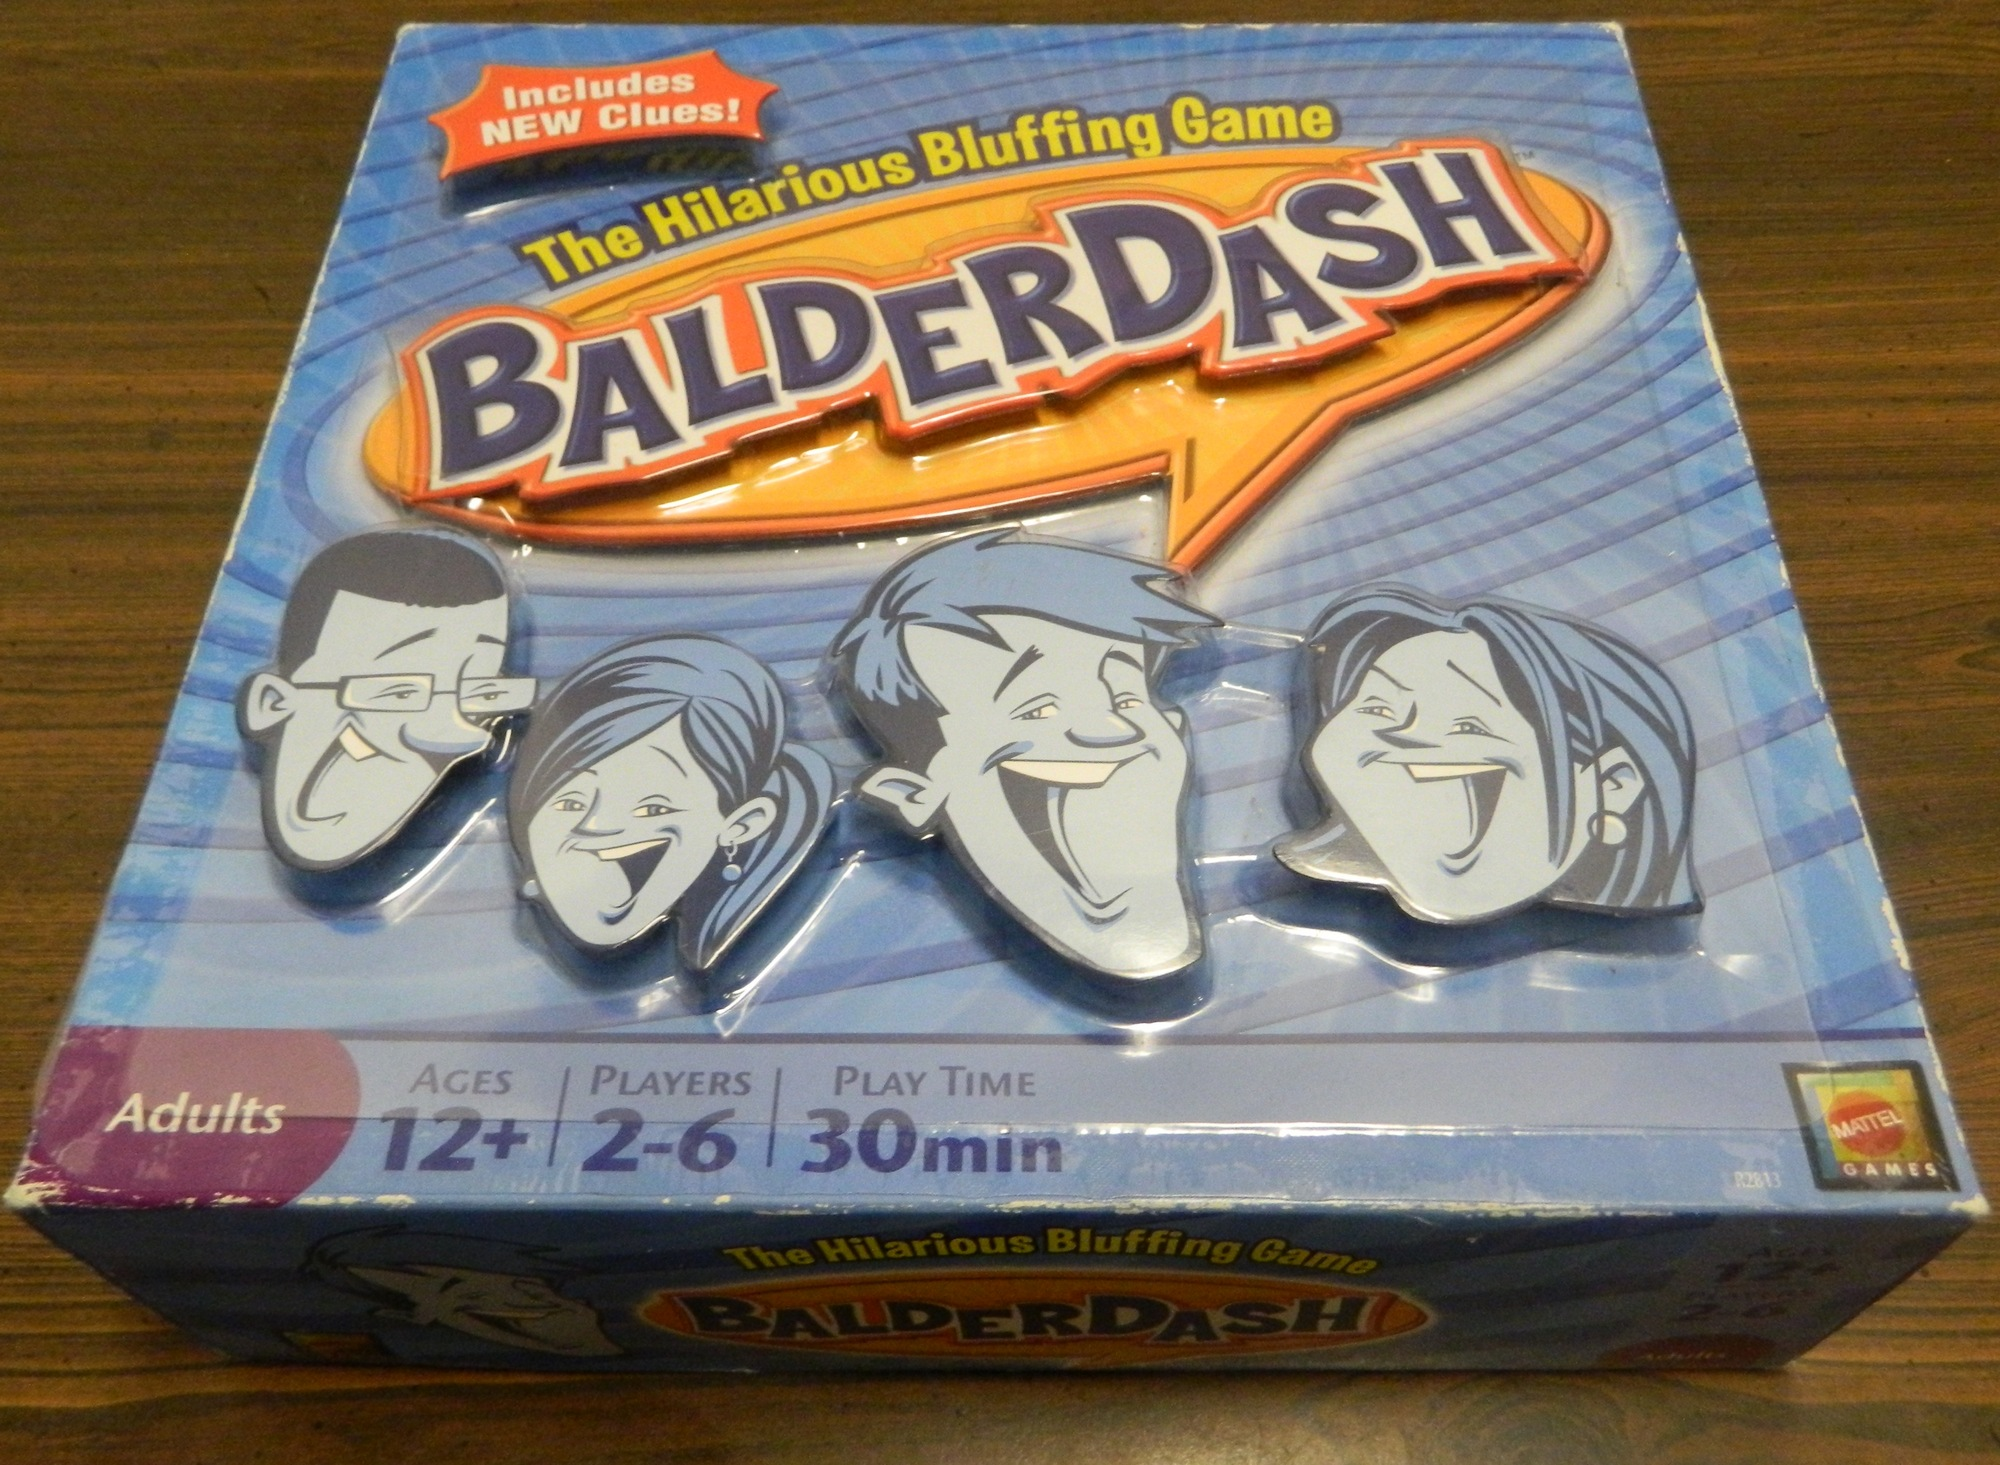 Box for Balderdash